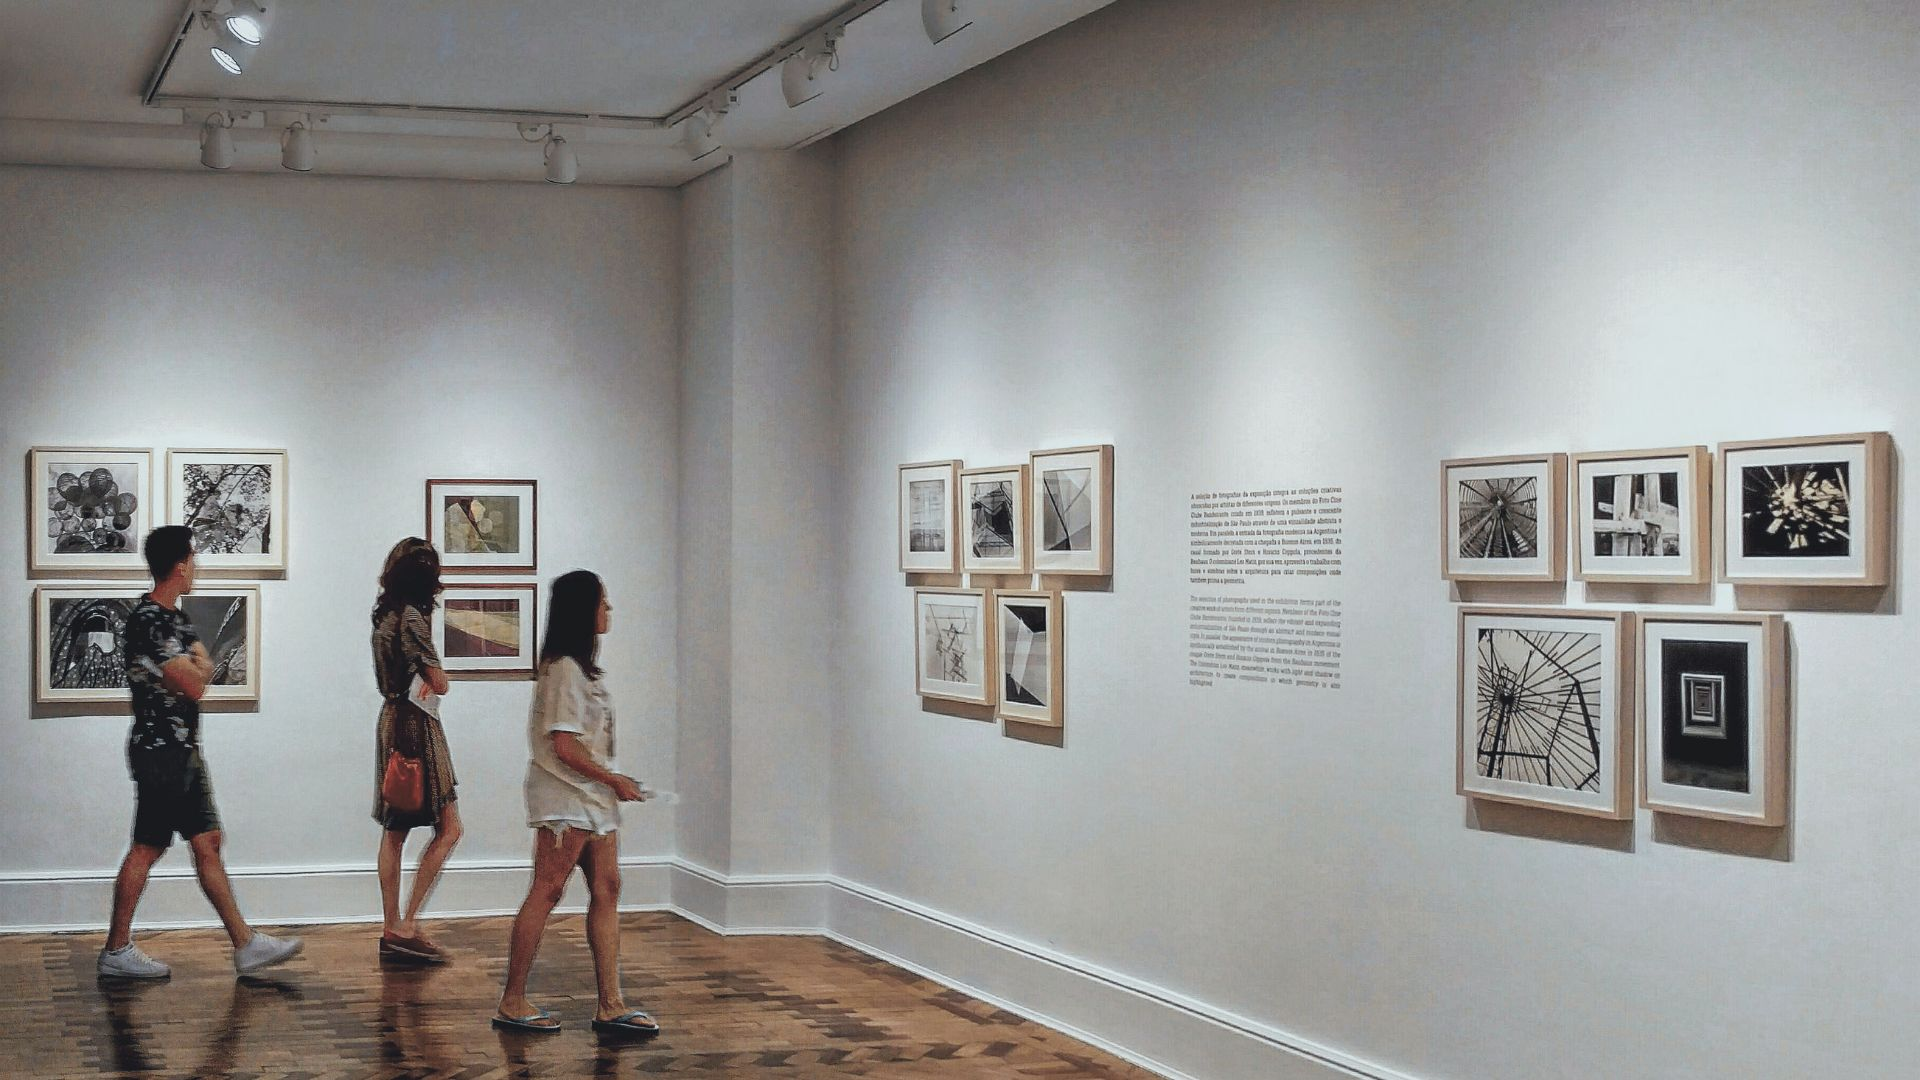 Study on the accessibility of museums to visually impaired people